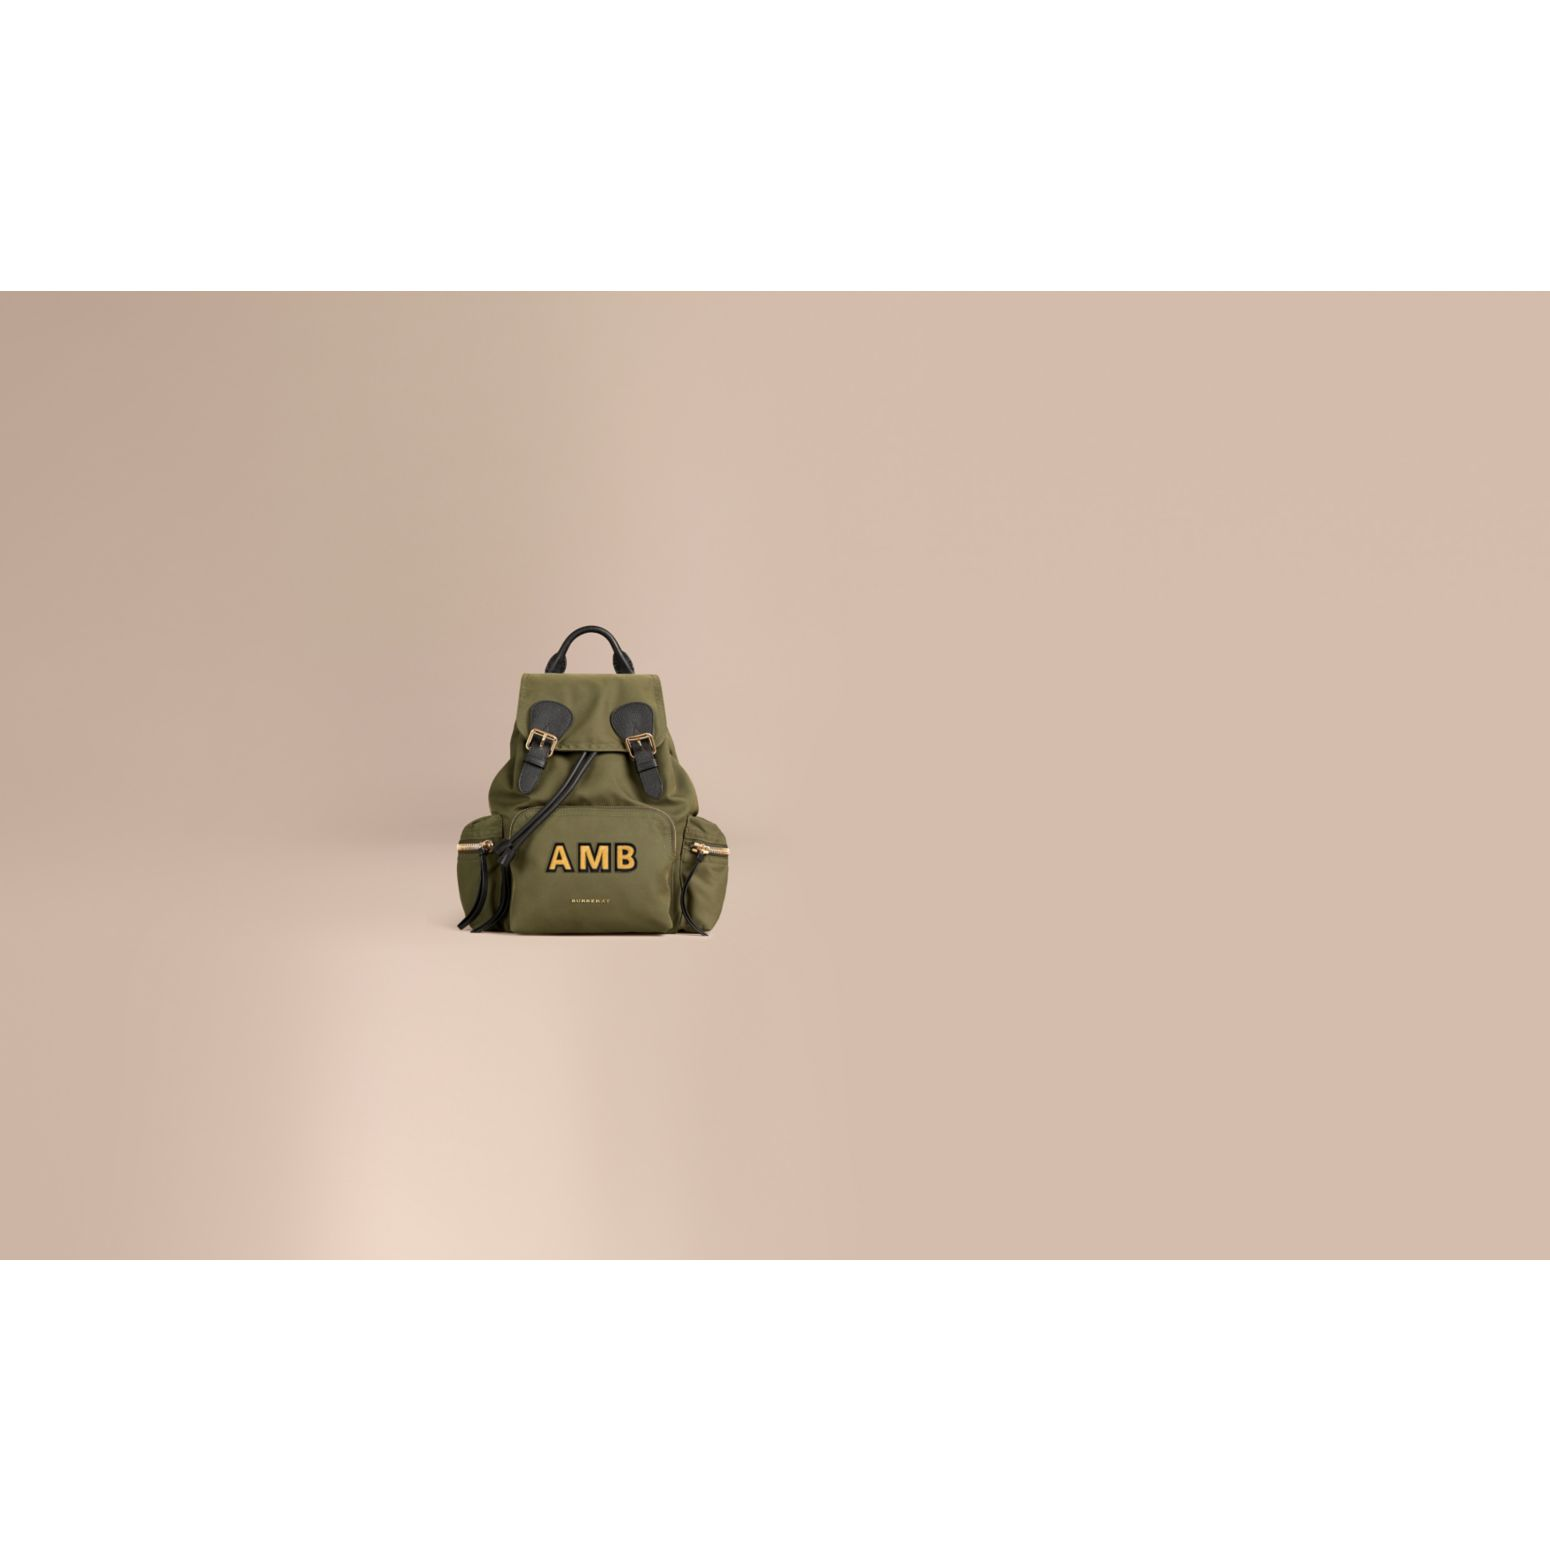 Zaino The Rucksack medio in nylon tecnico e pelle (Verde Tela) - Donna | Burberry - immagine della galleria 1